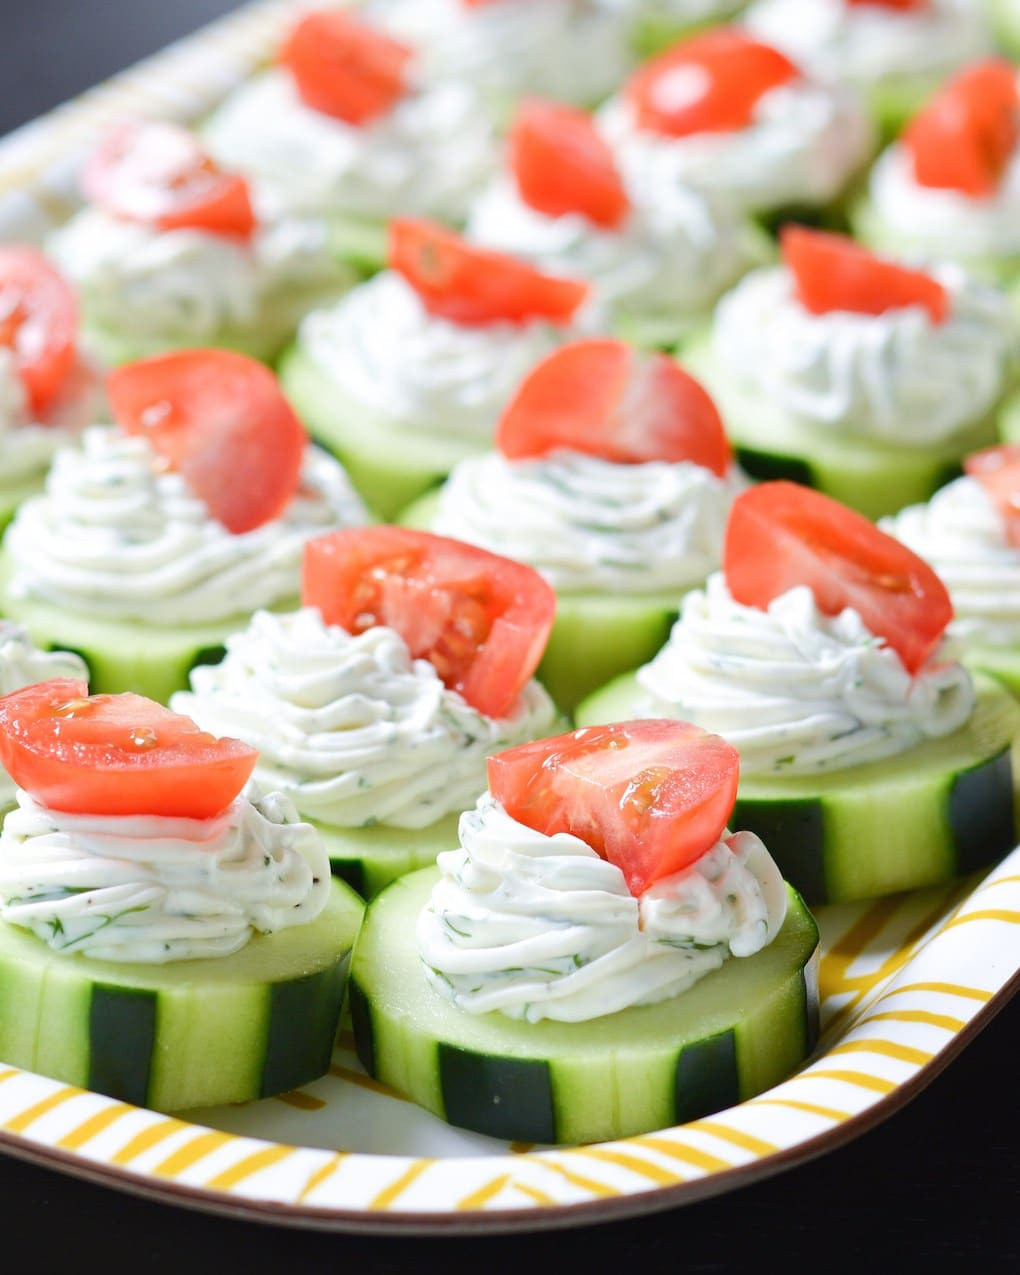 Healthy Appetizers For Party  18 Skinny Appetizers For Your Holiday Parties